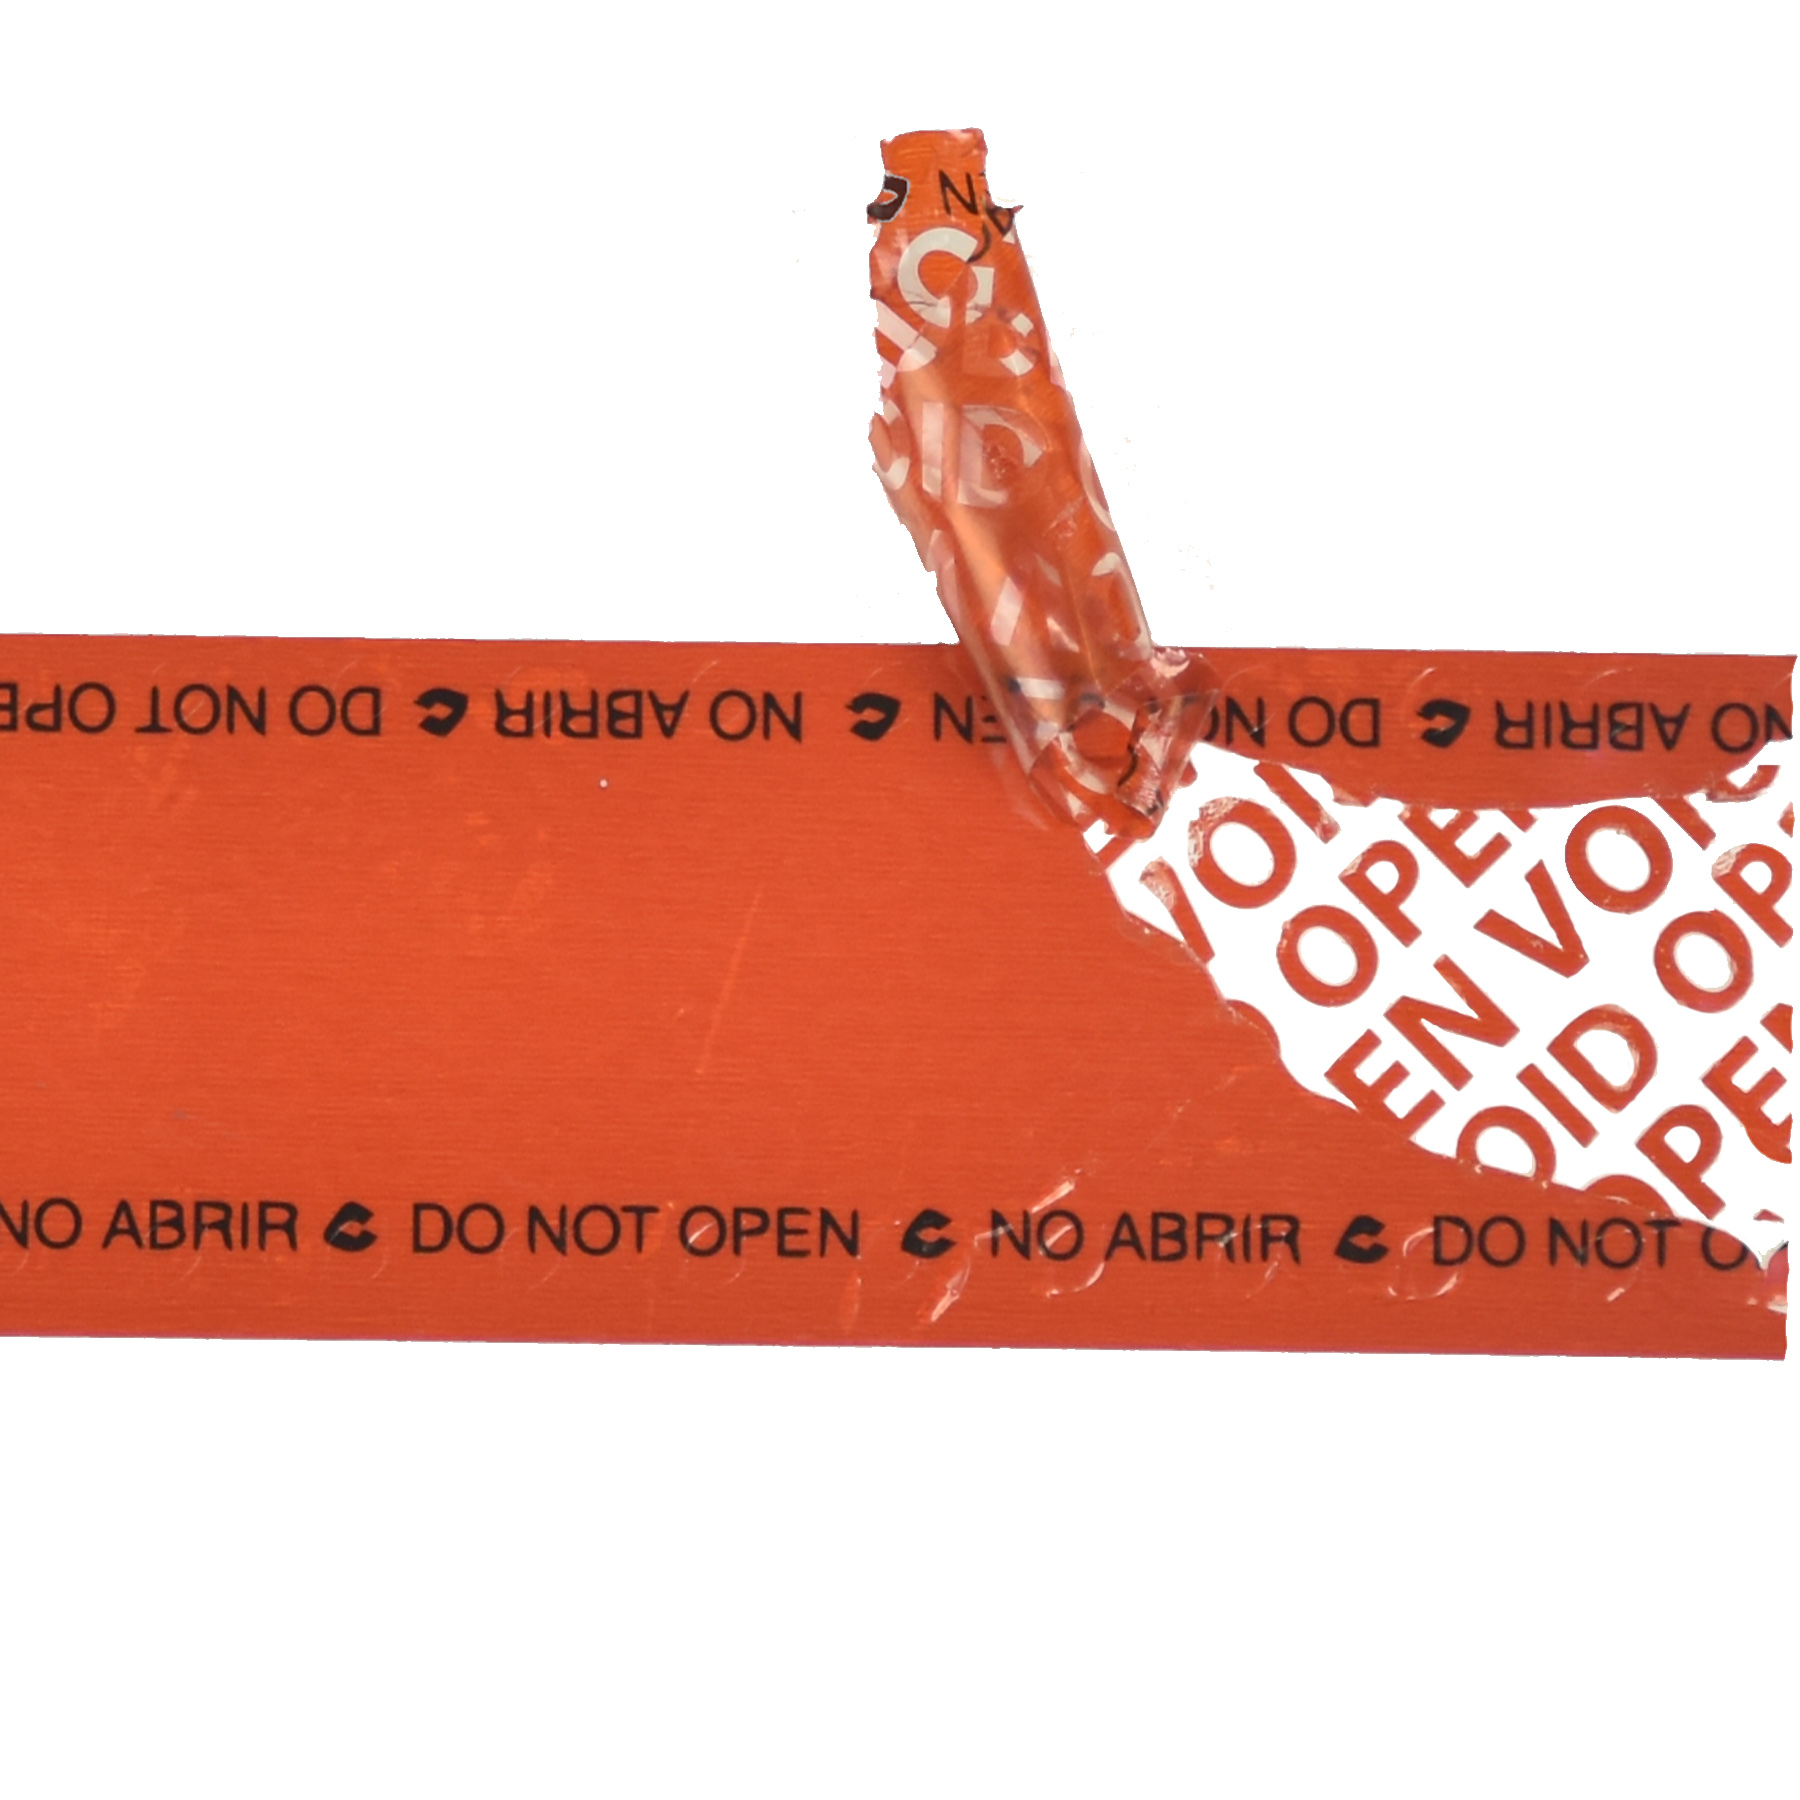 tamper evident bag tape with security cuts voided